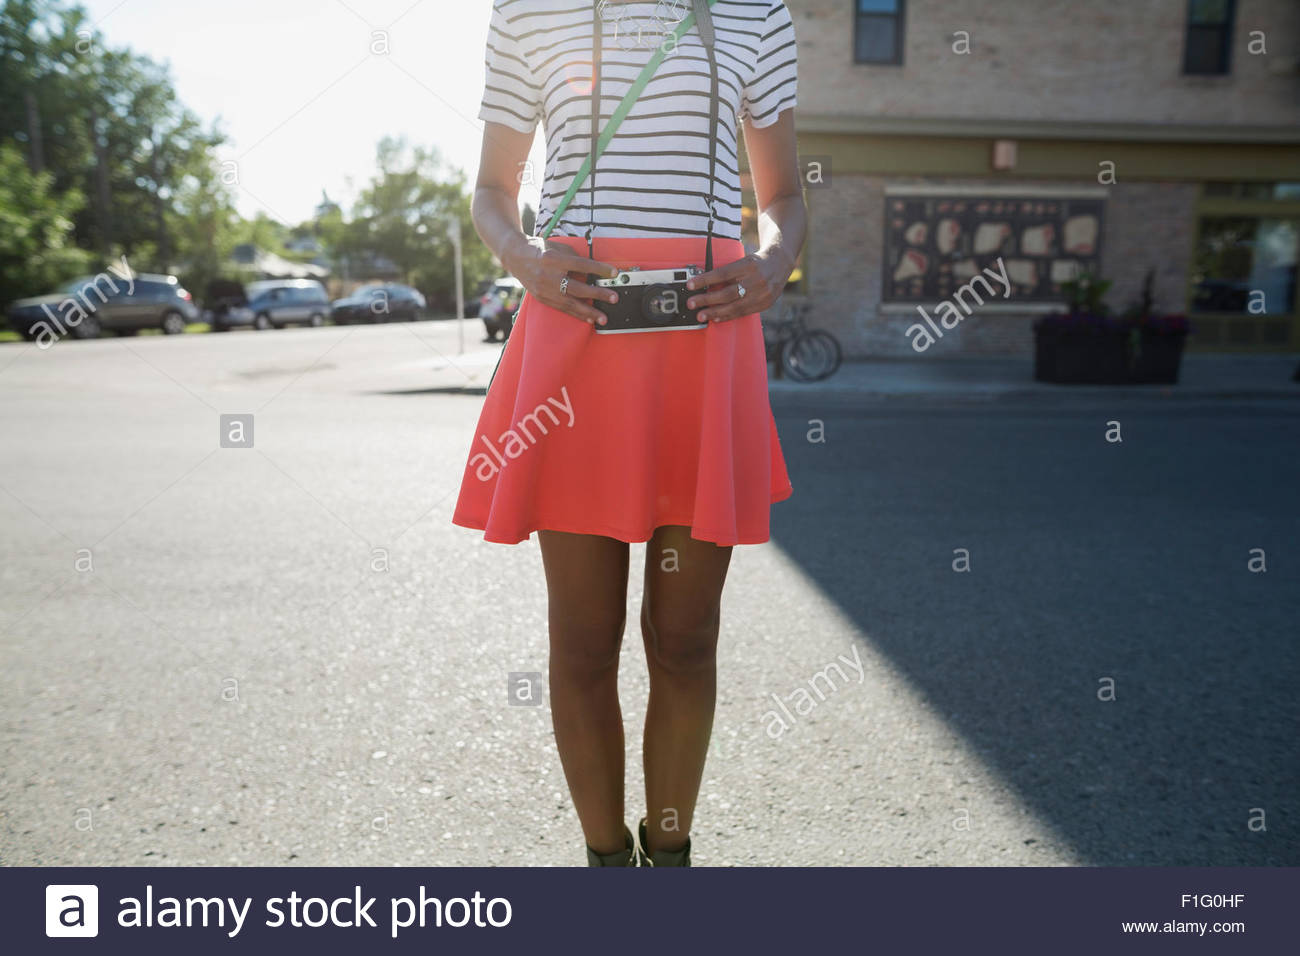 Midsection of woman in skirt with retro camera - Stock Image